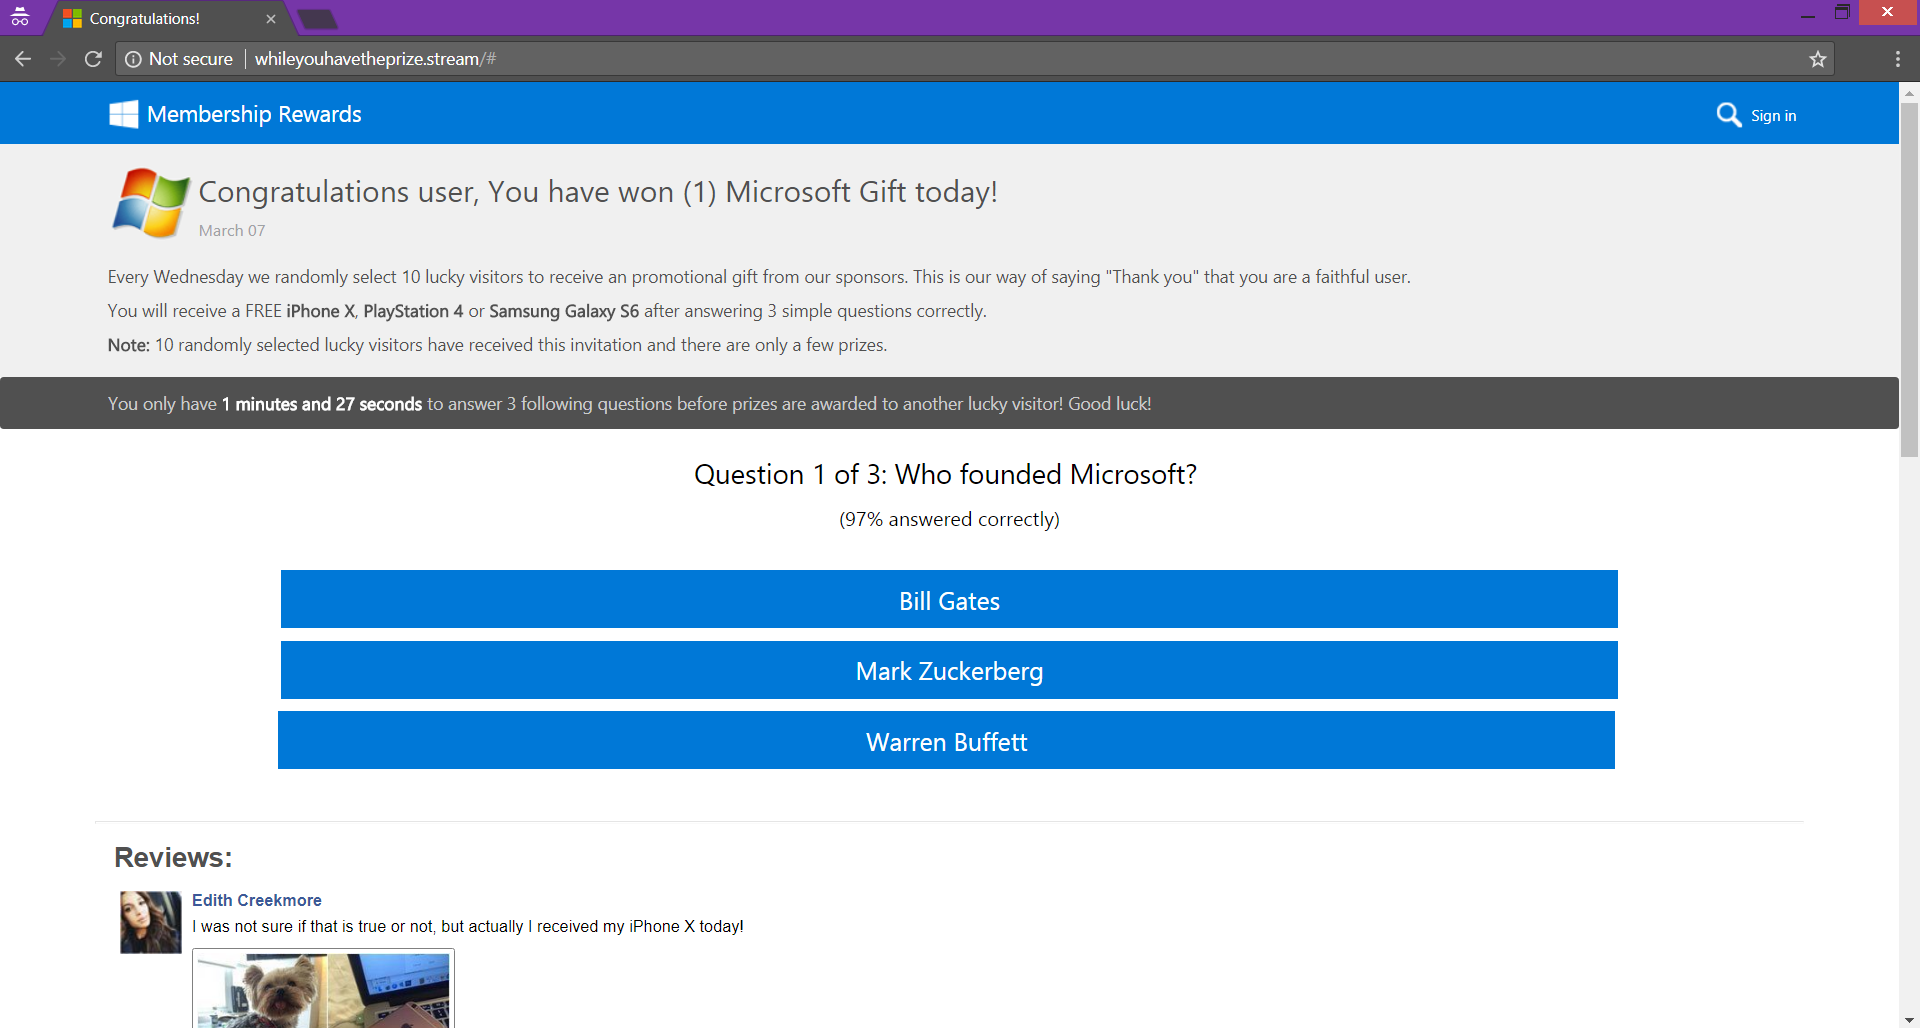 Congratulations user, You have won (1) Microsoft Gift today! scam page